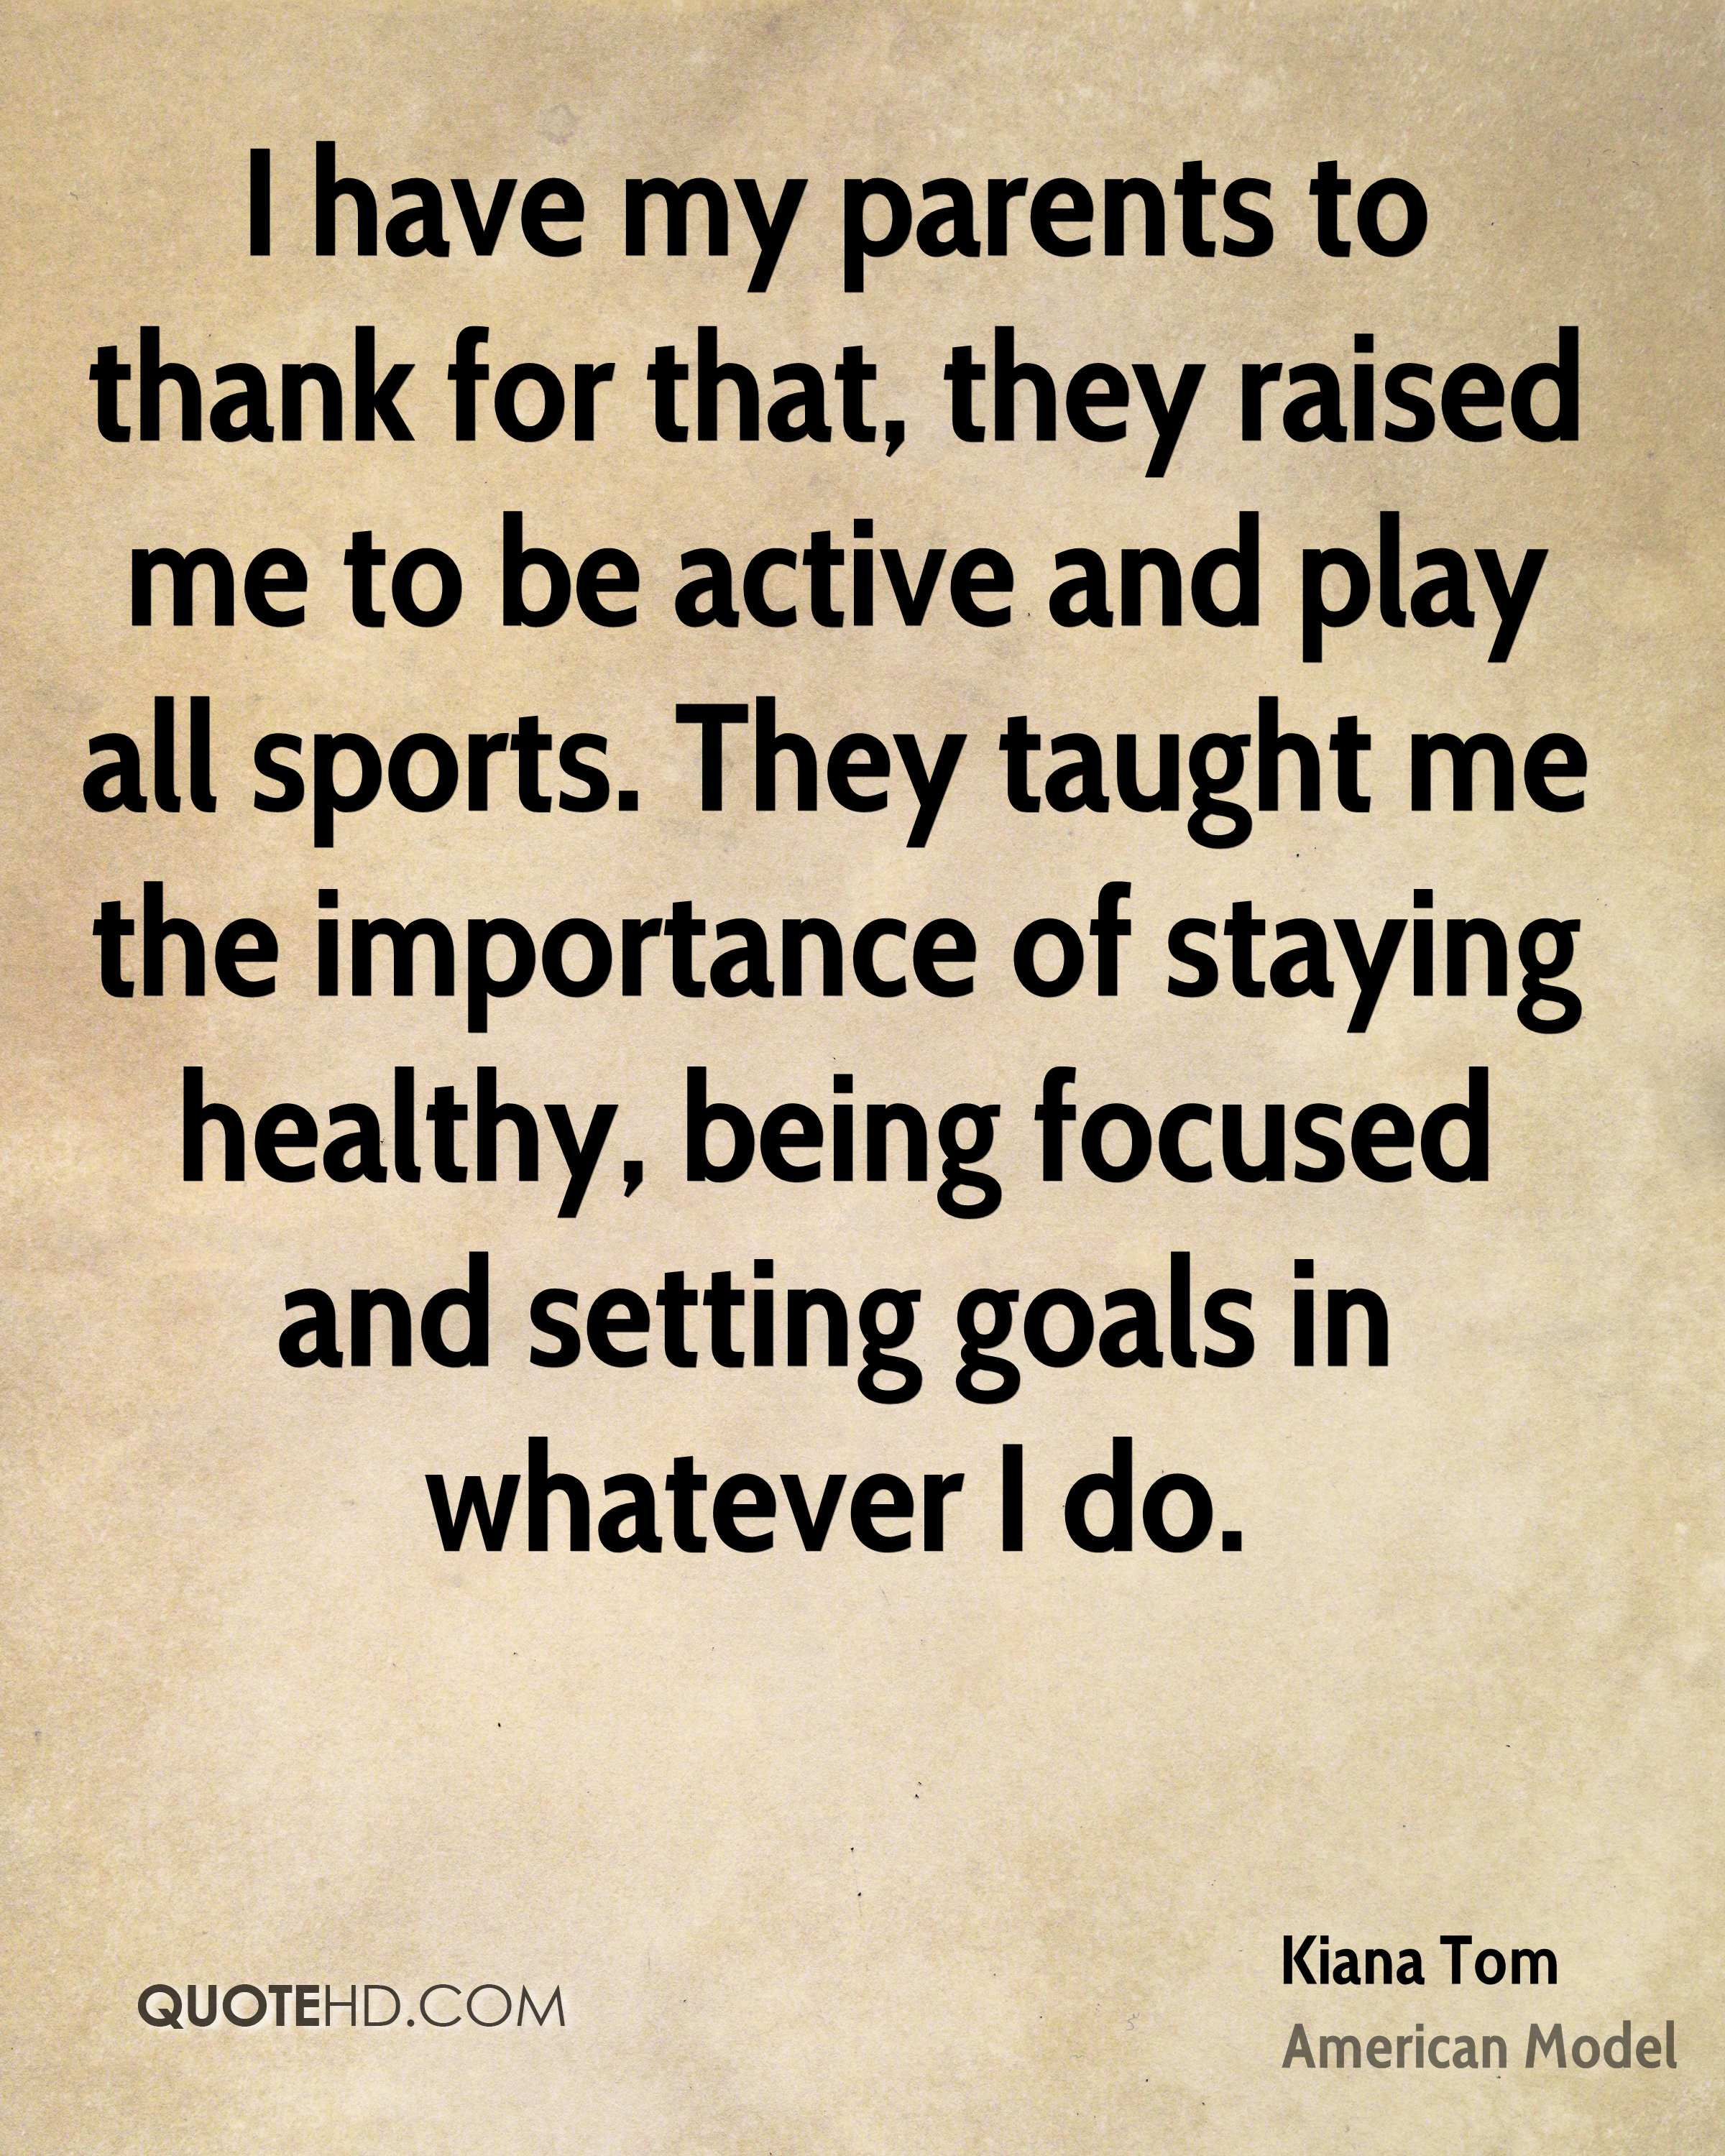 I have my parents to thank for that, they raised me to be active and play all sports. They taught me the importance of staying healthy, being focused and setting goals in whatever I do.